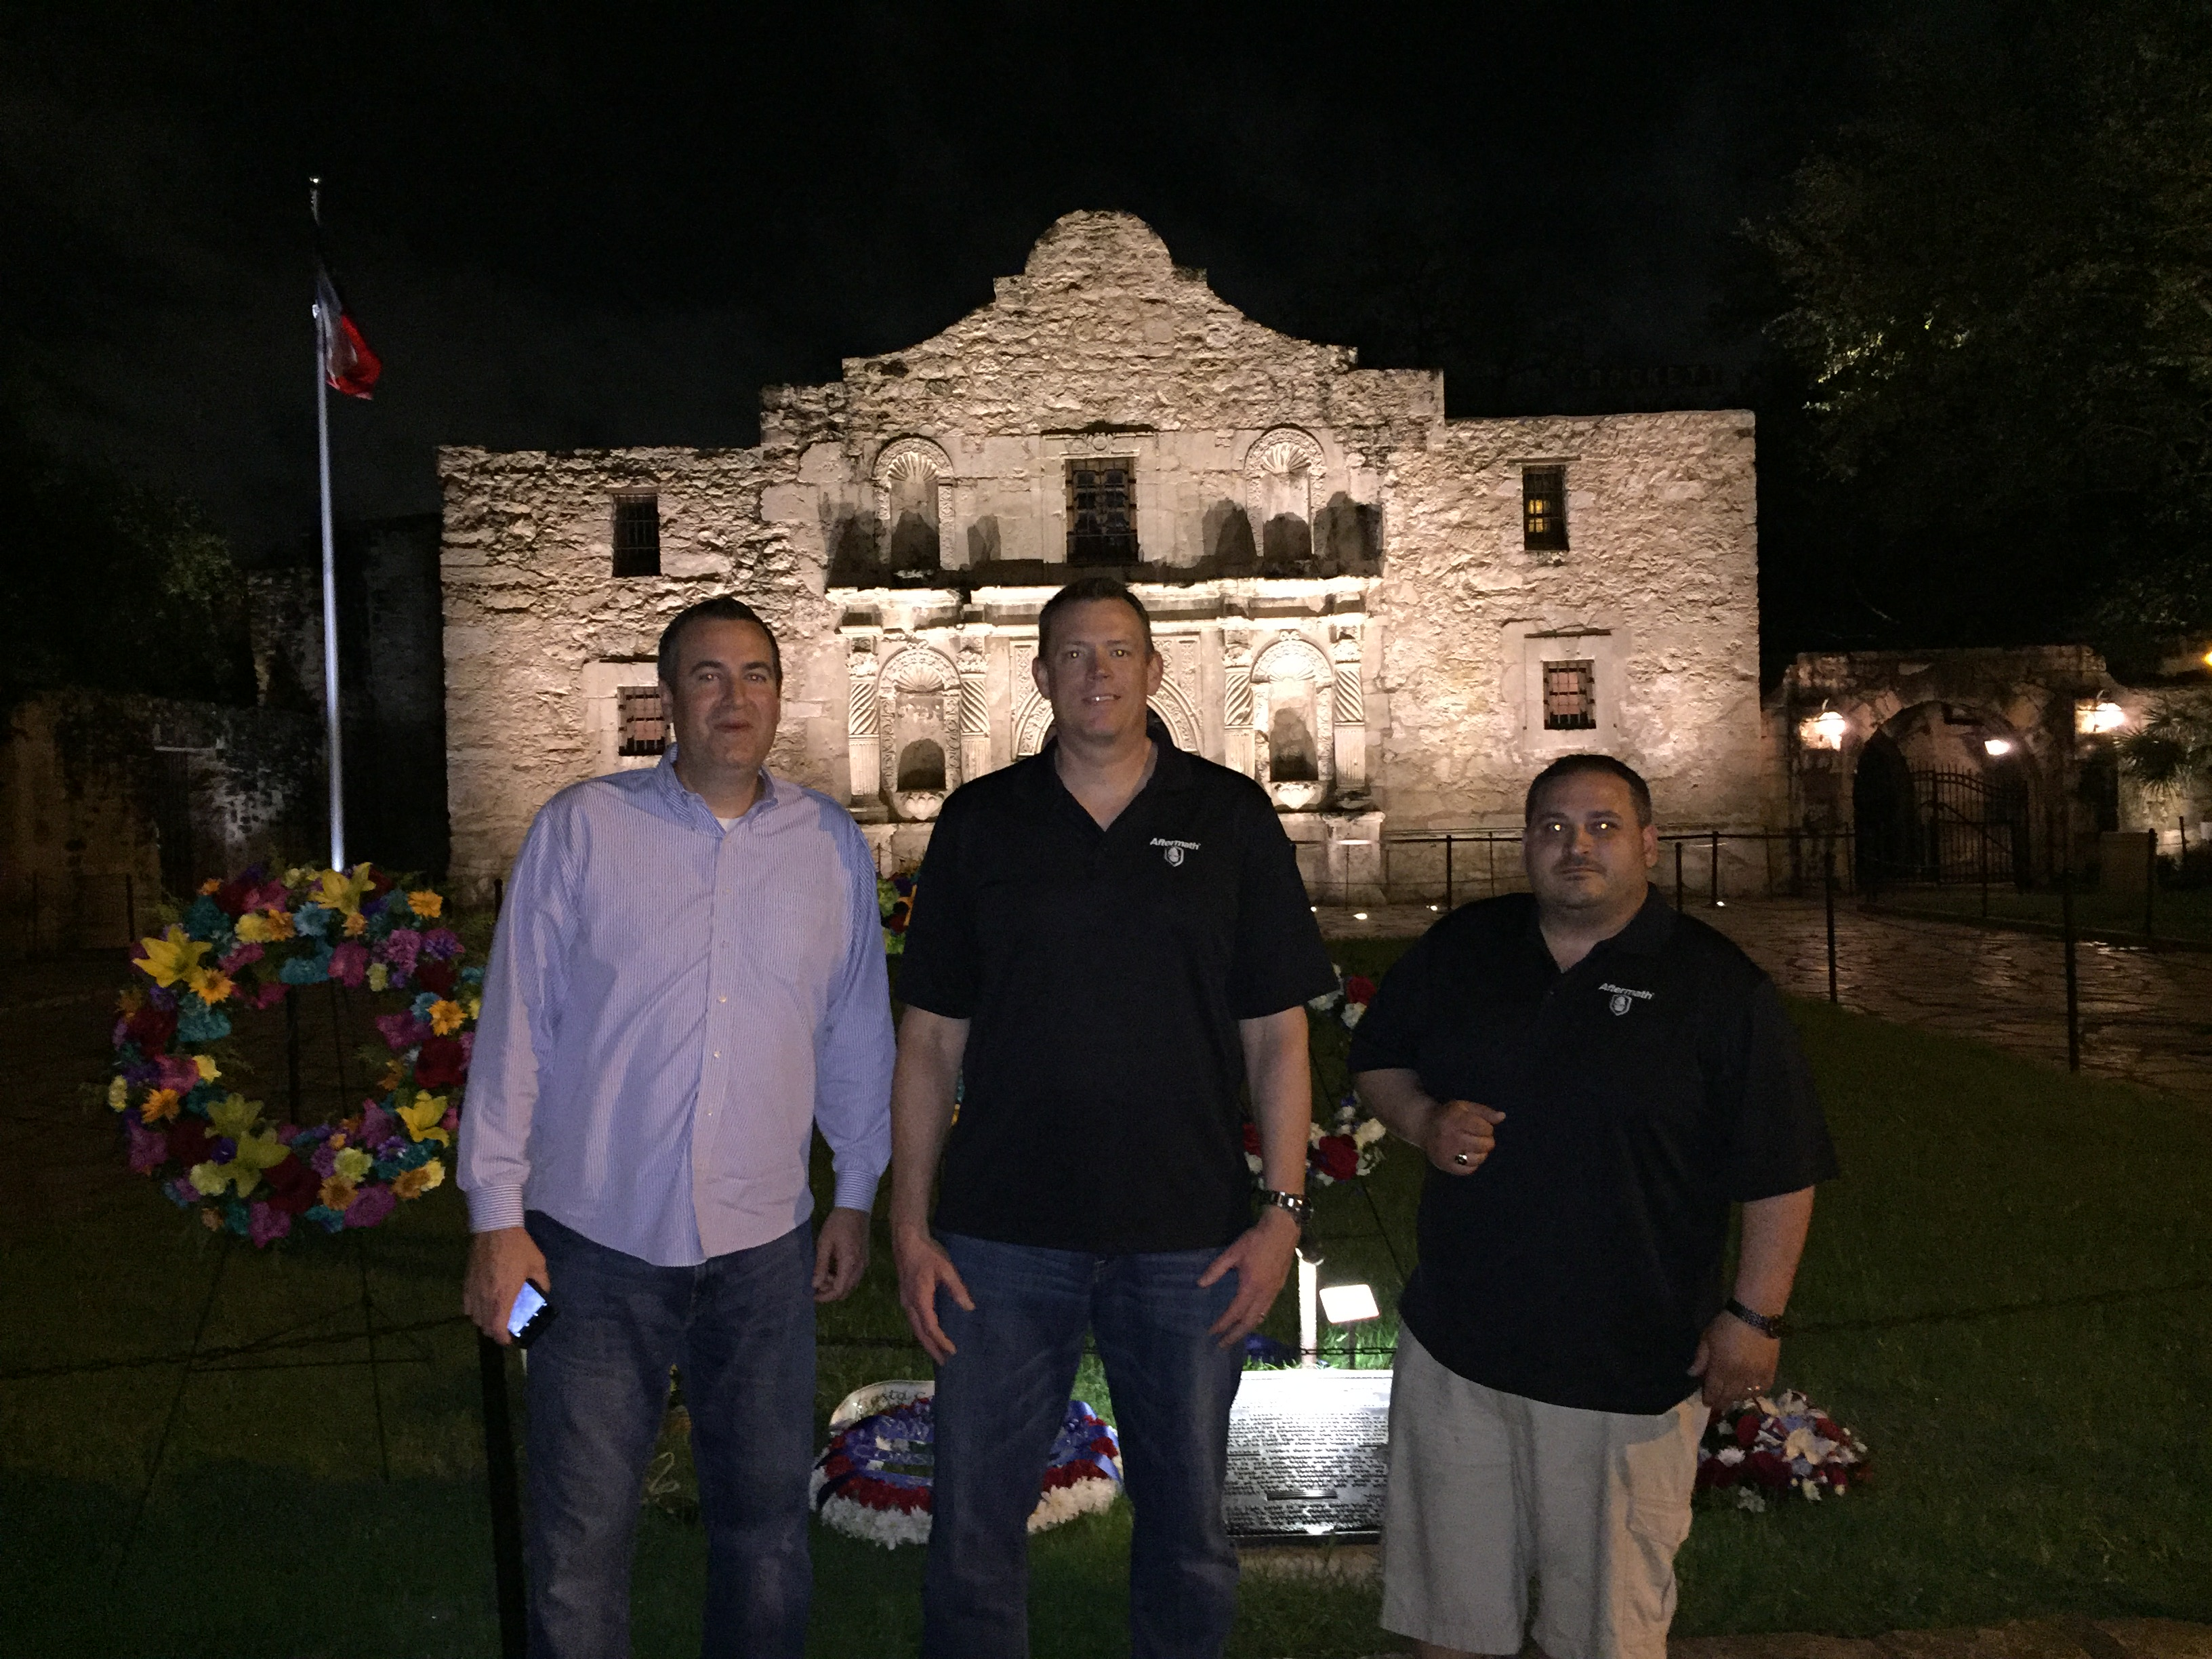 Aftermath Attends the 2016 PLRB Claims Conference in San Antonio